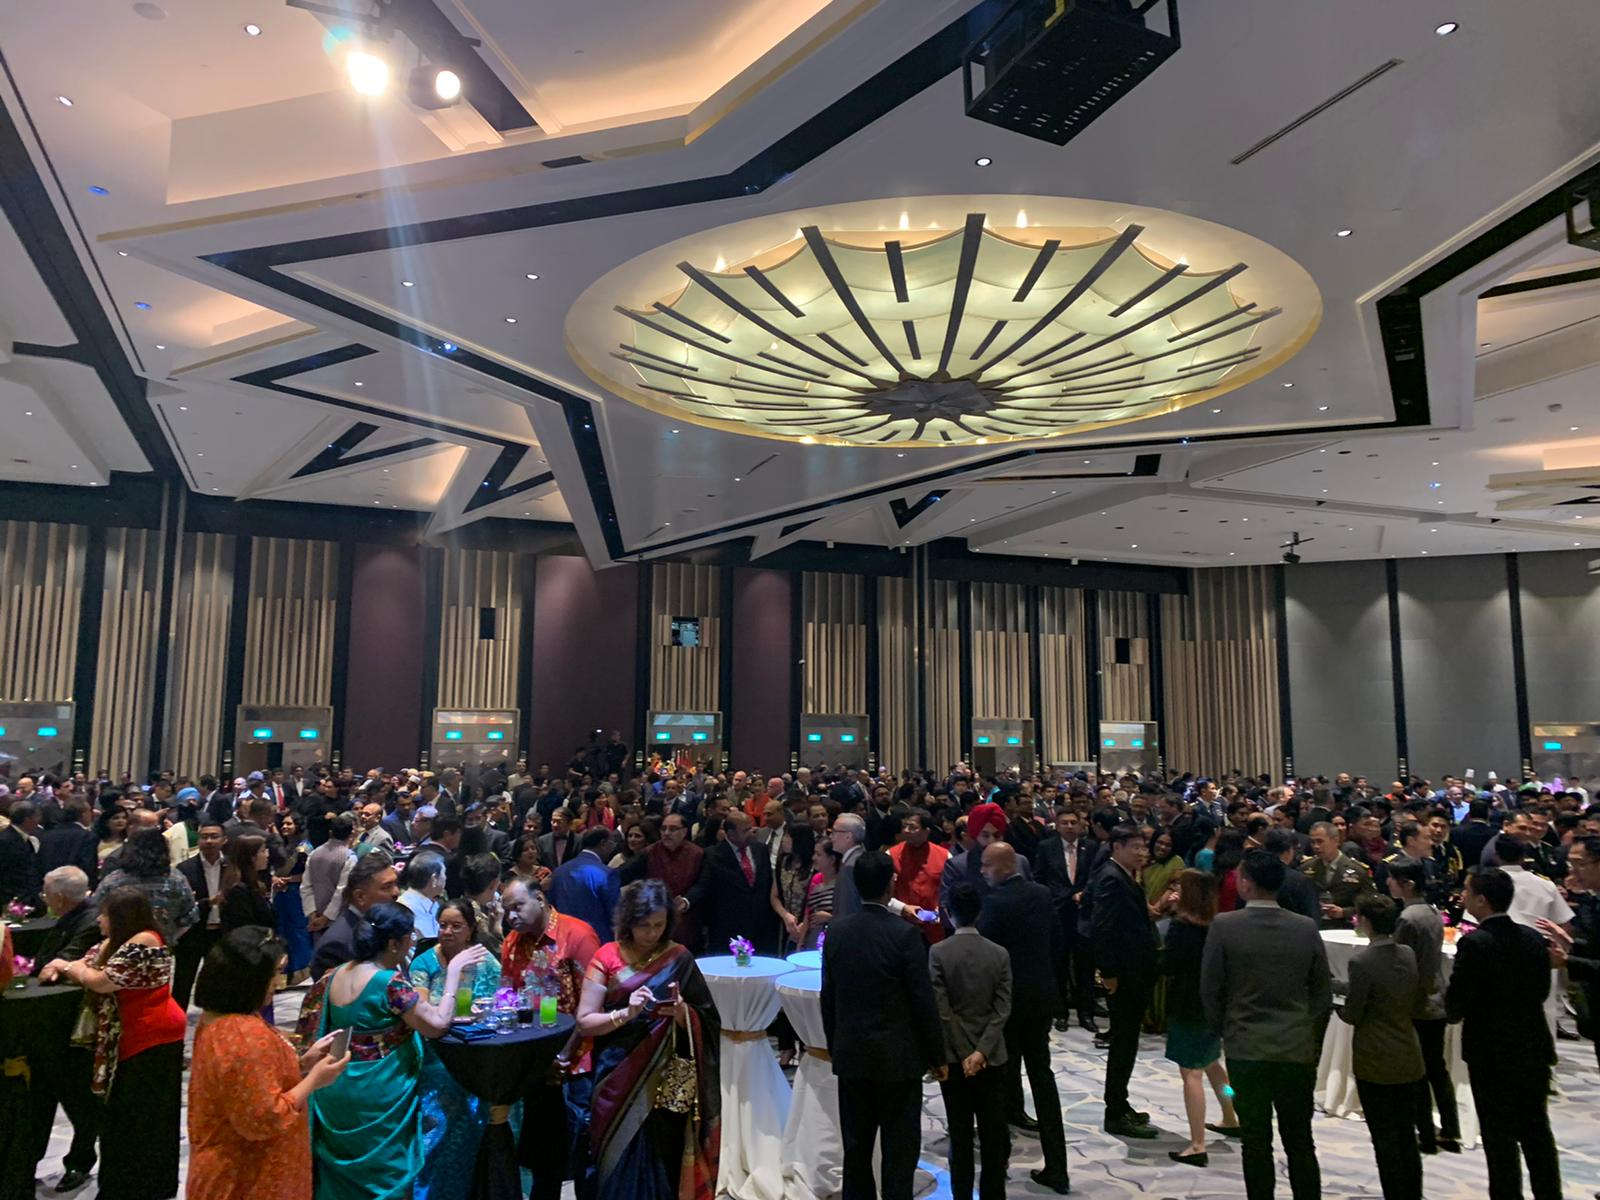 A grand reception, perhaps the first of its kind, was hosted by the High Commissioner of India to Singapore, H.E. Jawed Ashraf to celebrate the 71st Republic Day of India, which falls on 26 January. Photo: Connected to India